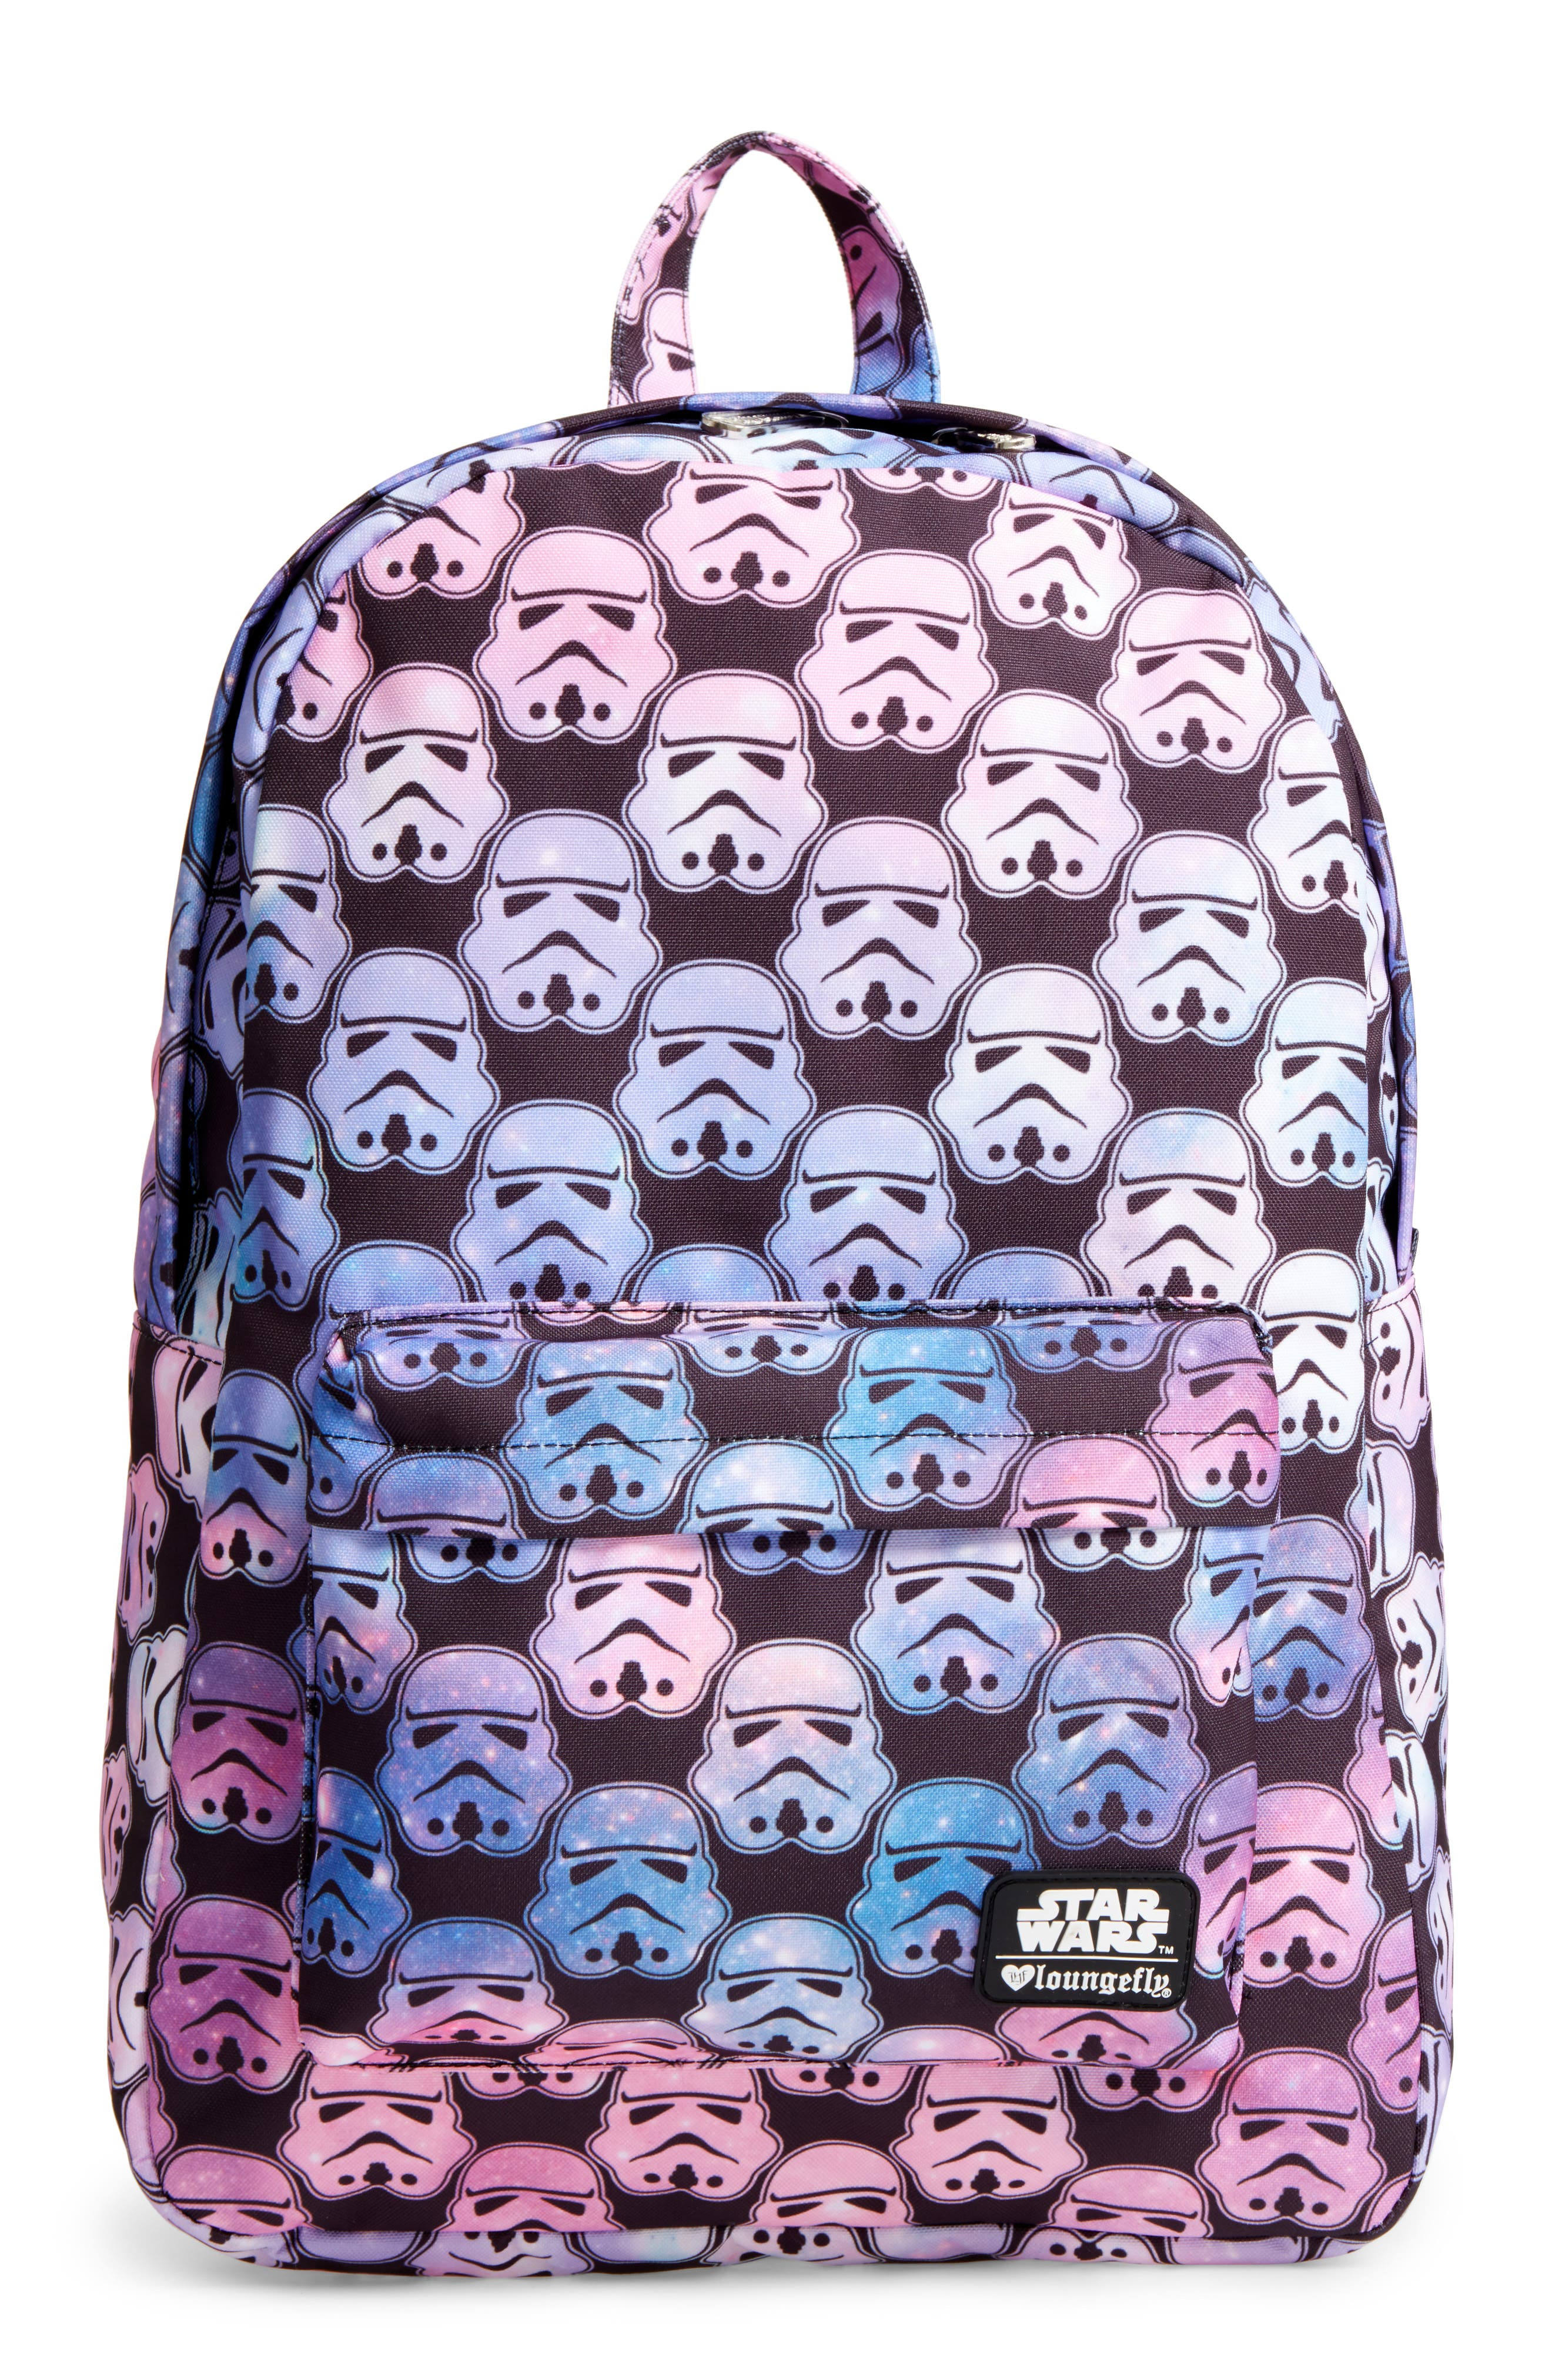 Alternate Image 1 Selected - Loungefly Star Wars™ Stormtrooper Galaxy Backpack (Kids)